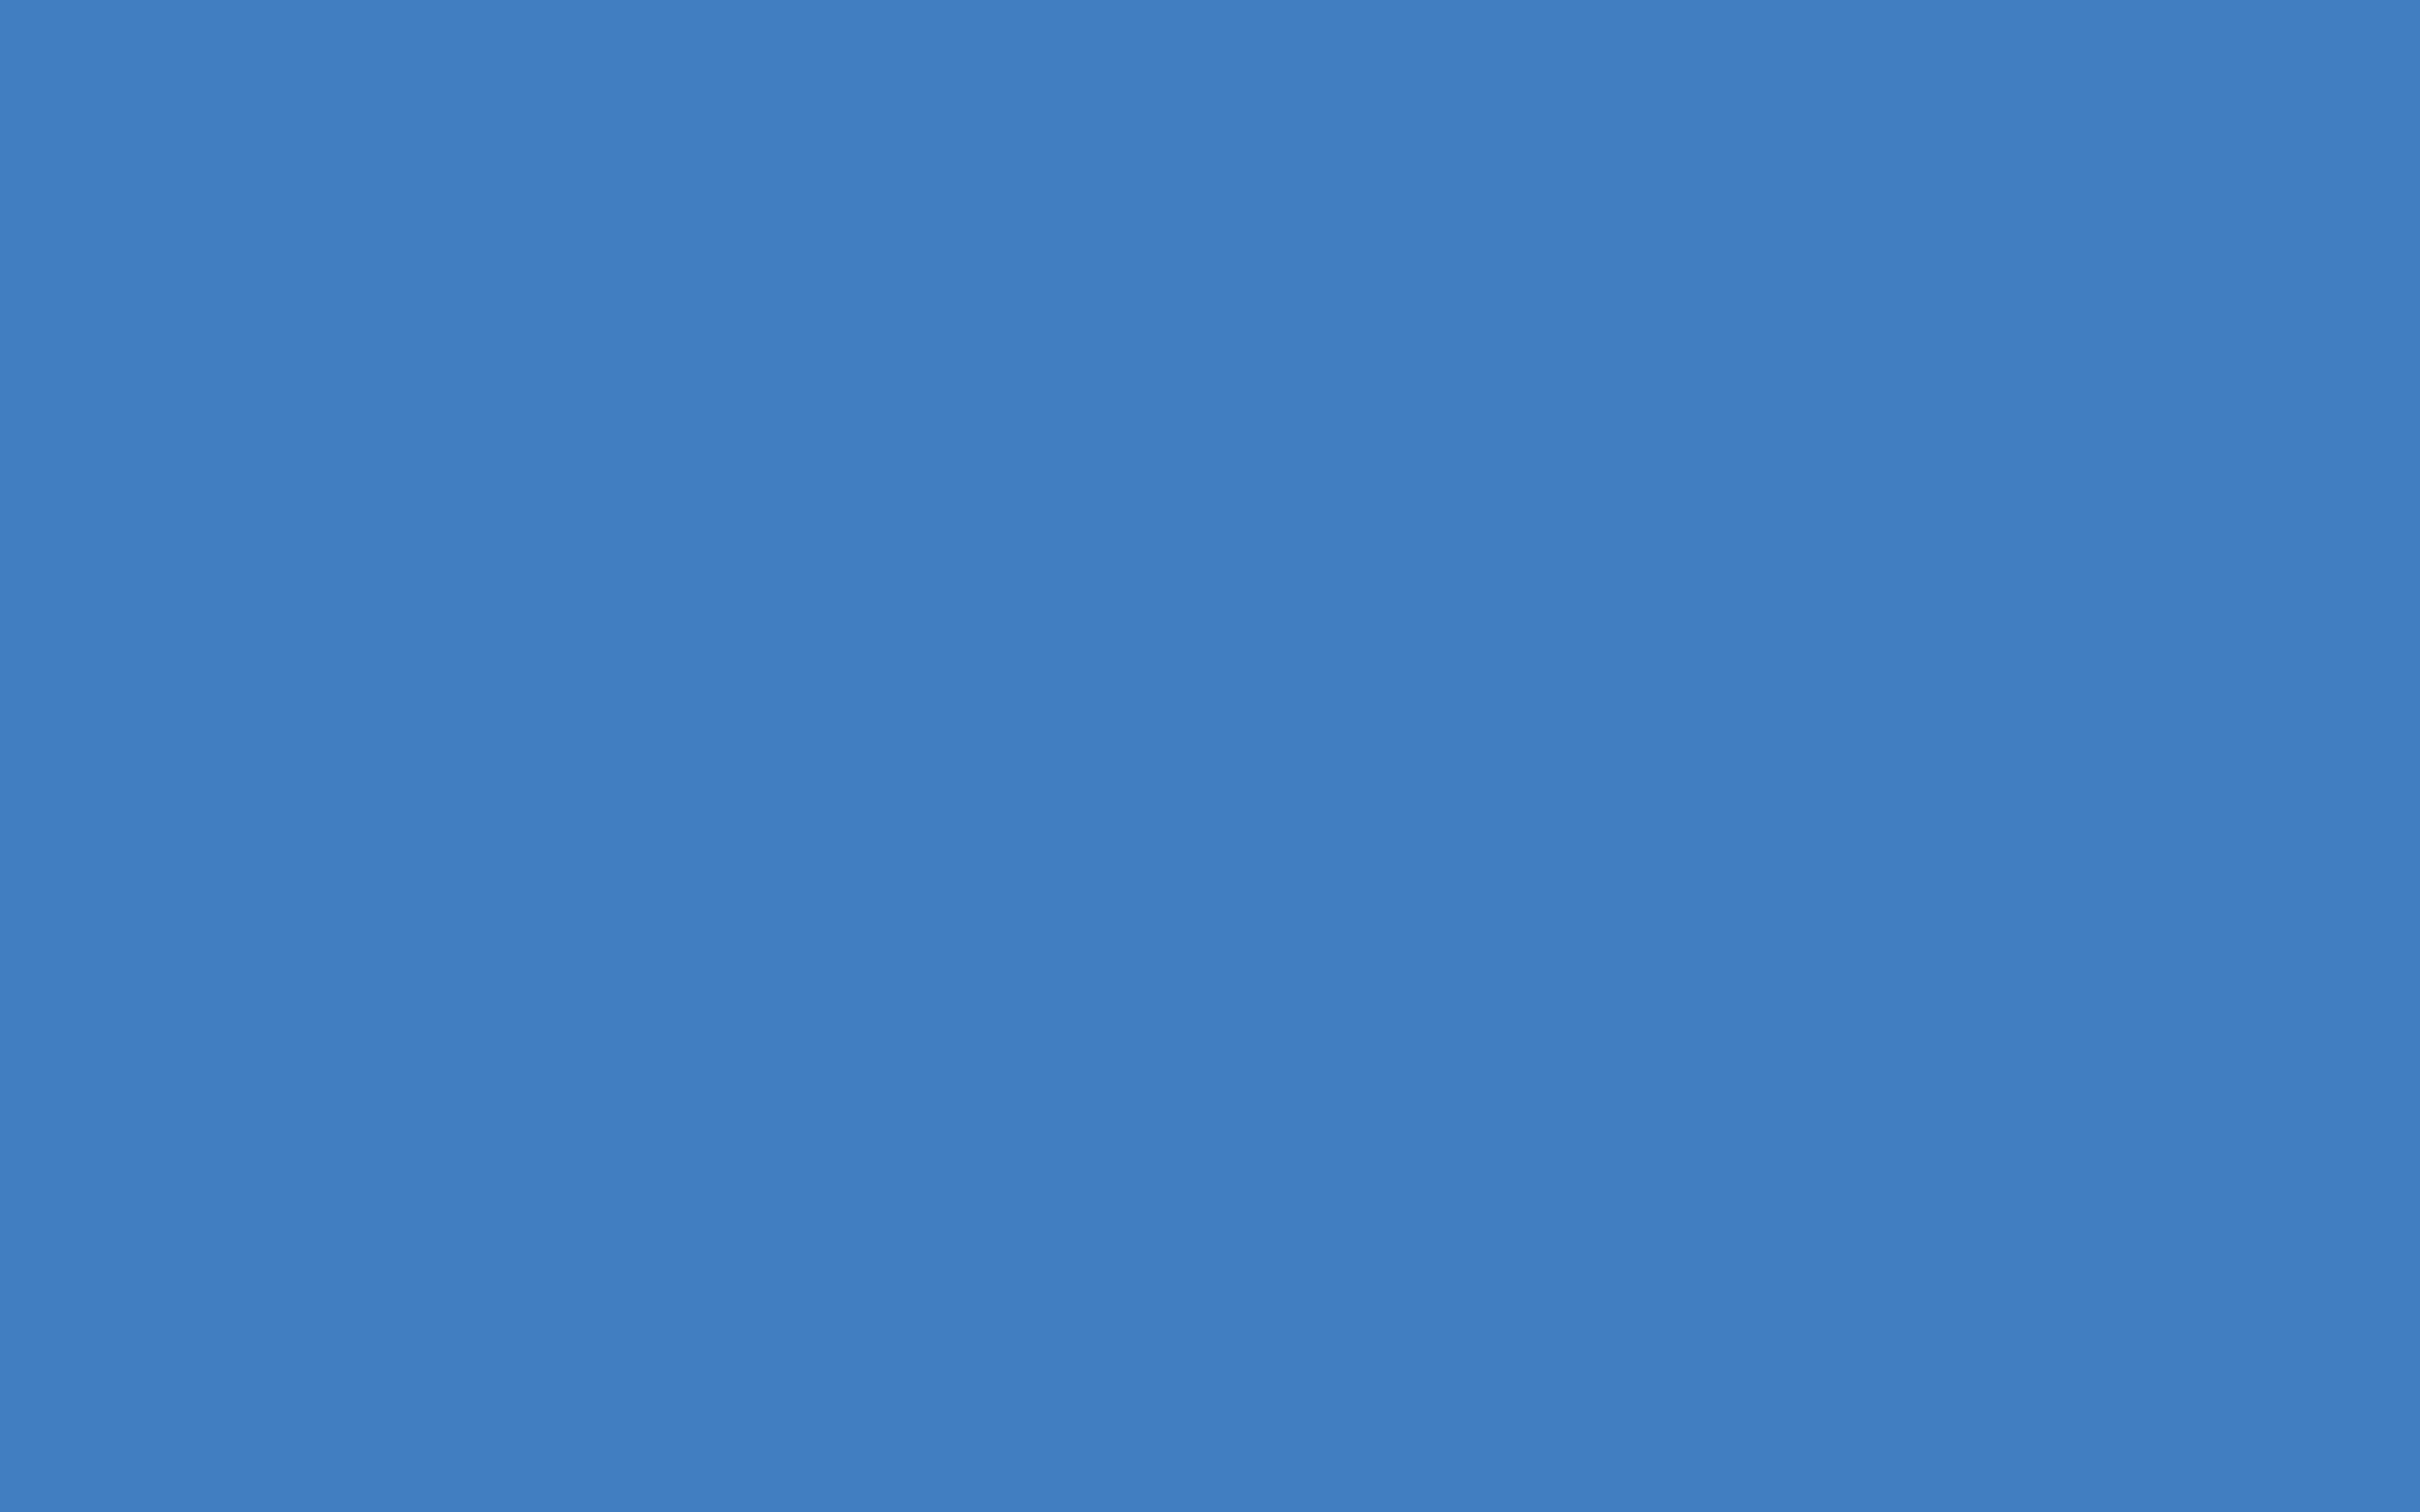 2560x1600 Tufts Blue Solid Color Background